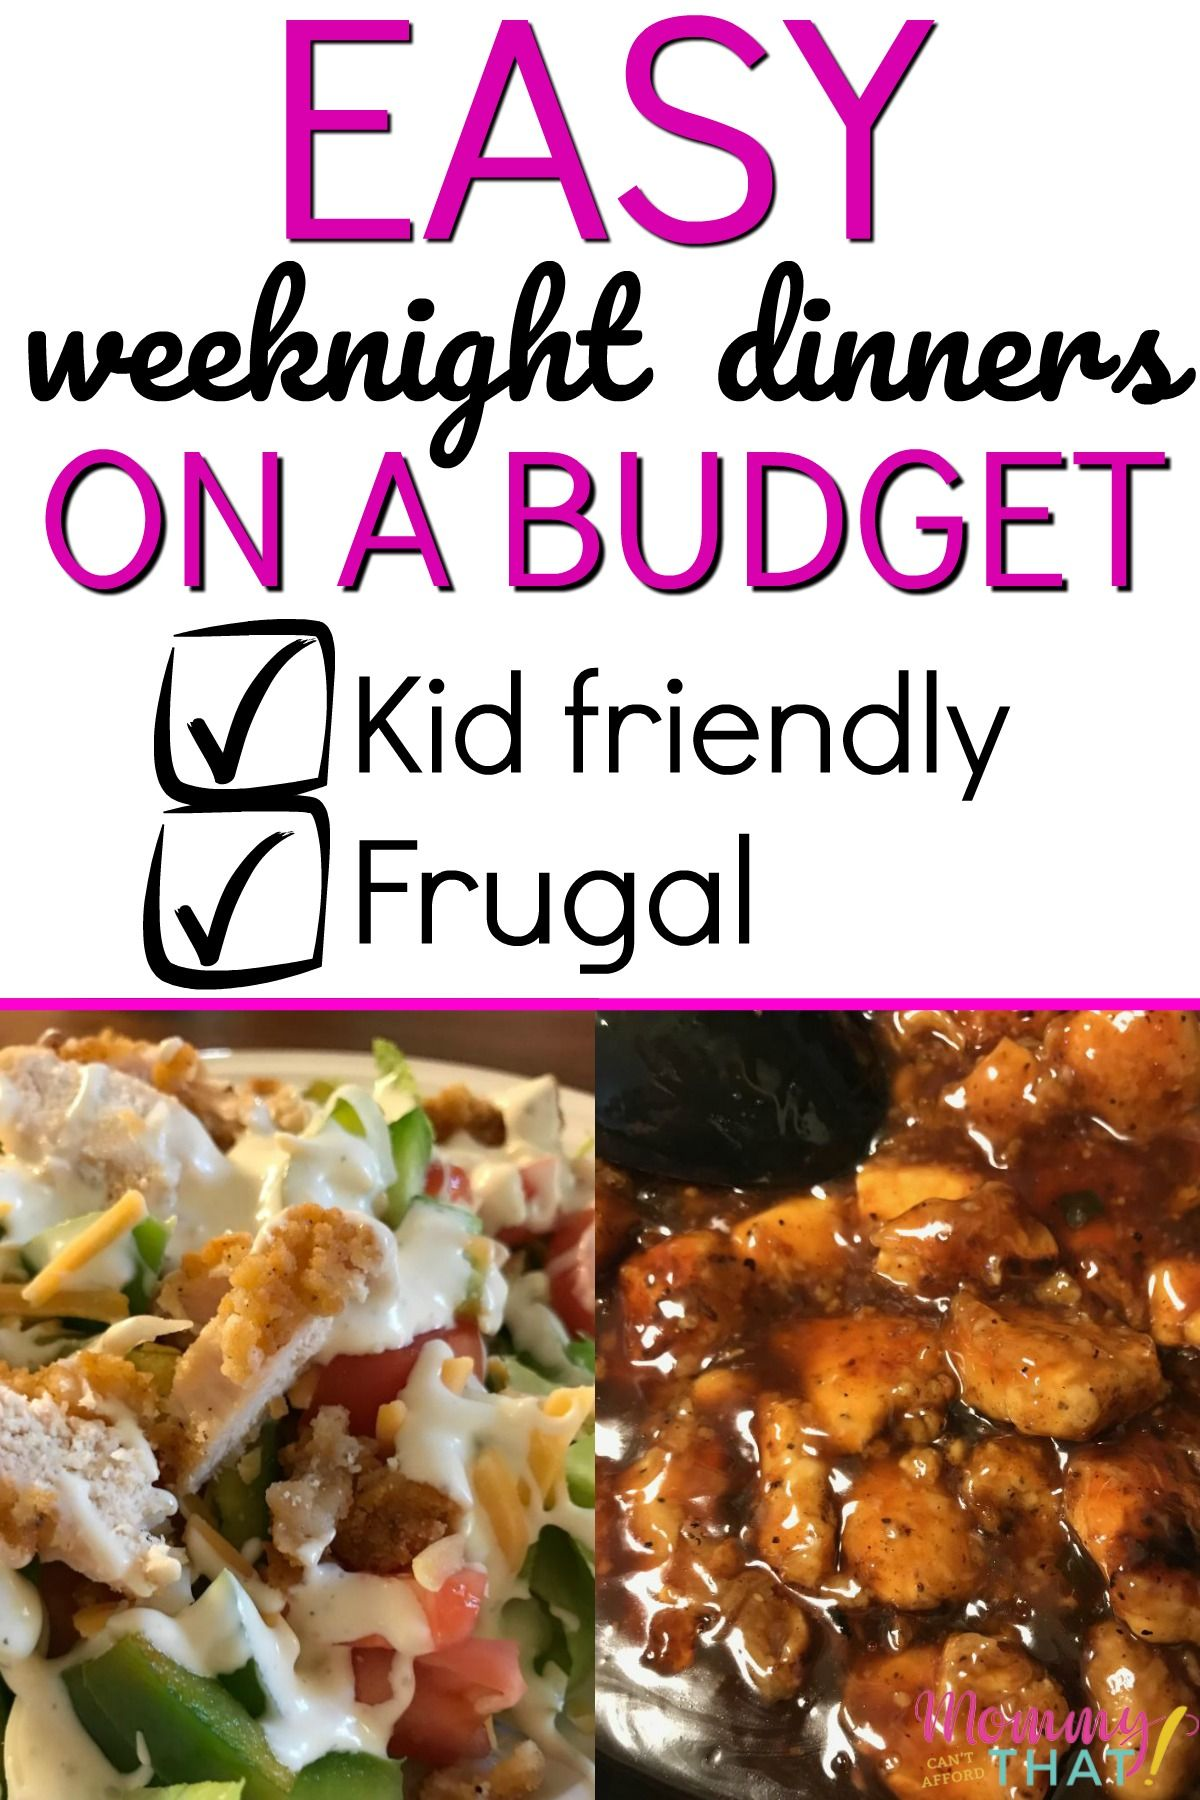 $100 Weekly Family Meal Plan On A Budget images